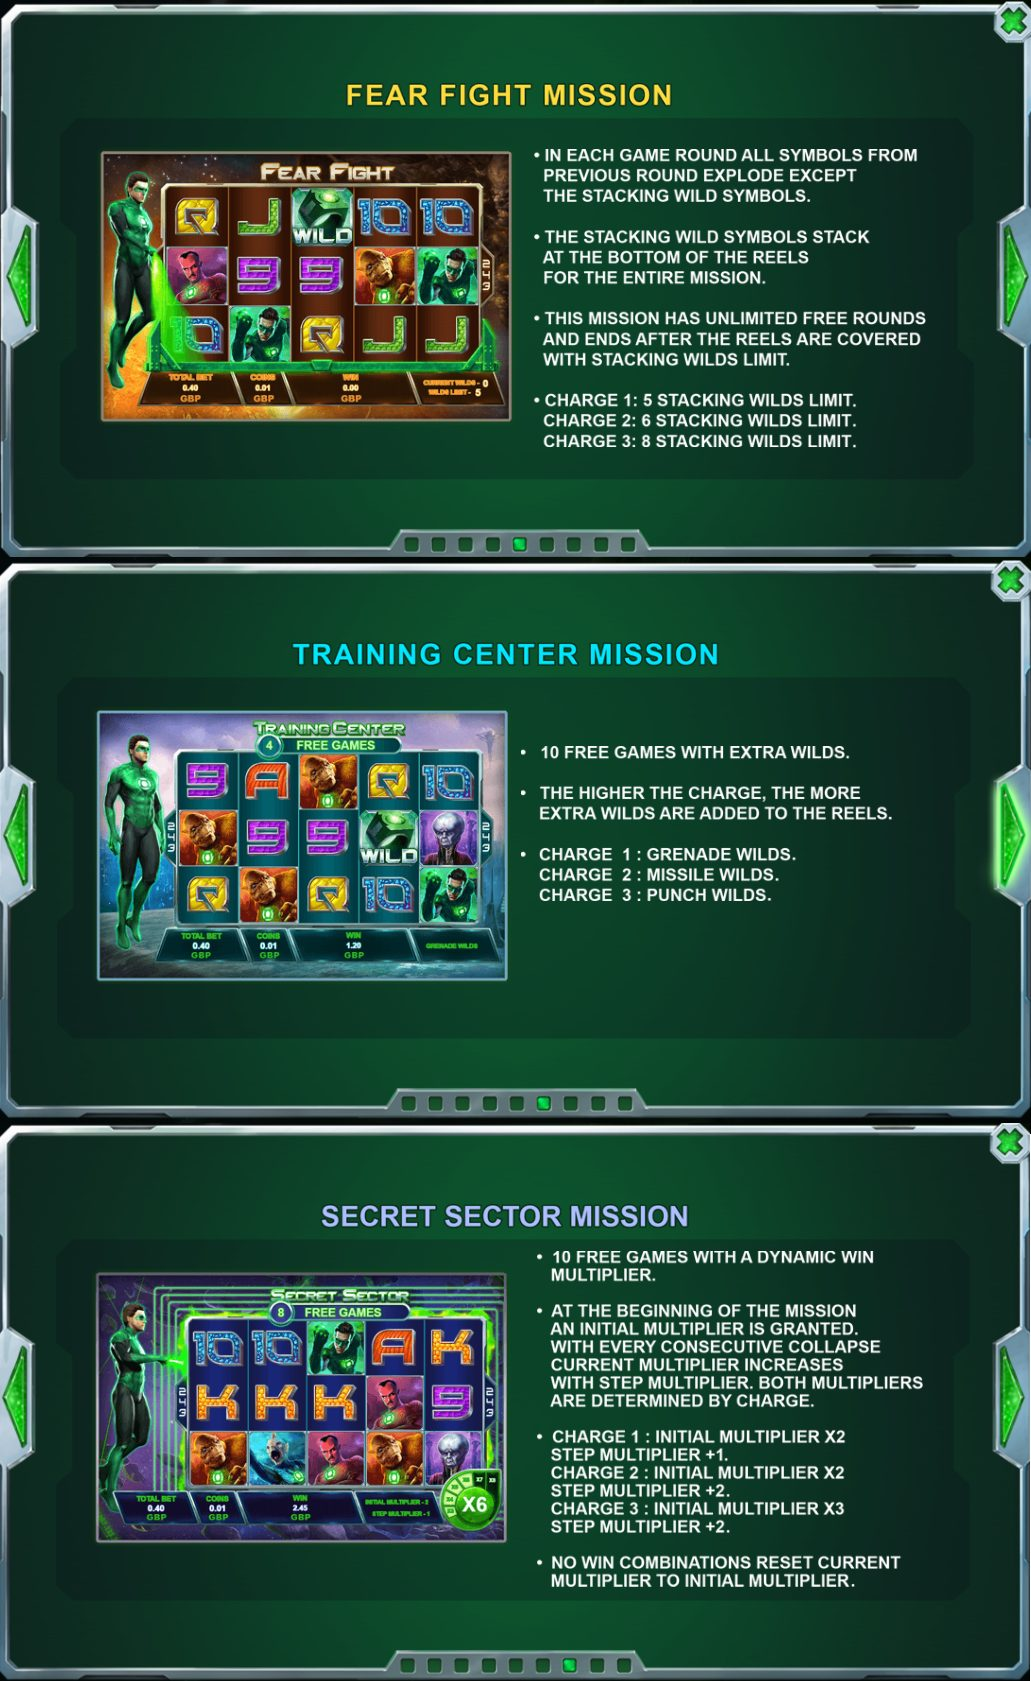 This is a composite image of the Green Lantern slot consiting of 3 pictures put together. The picture shows the various special features you can activate by charging the green lantern power bar. You can read about these features under the picture.